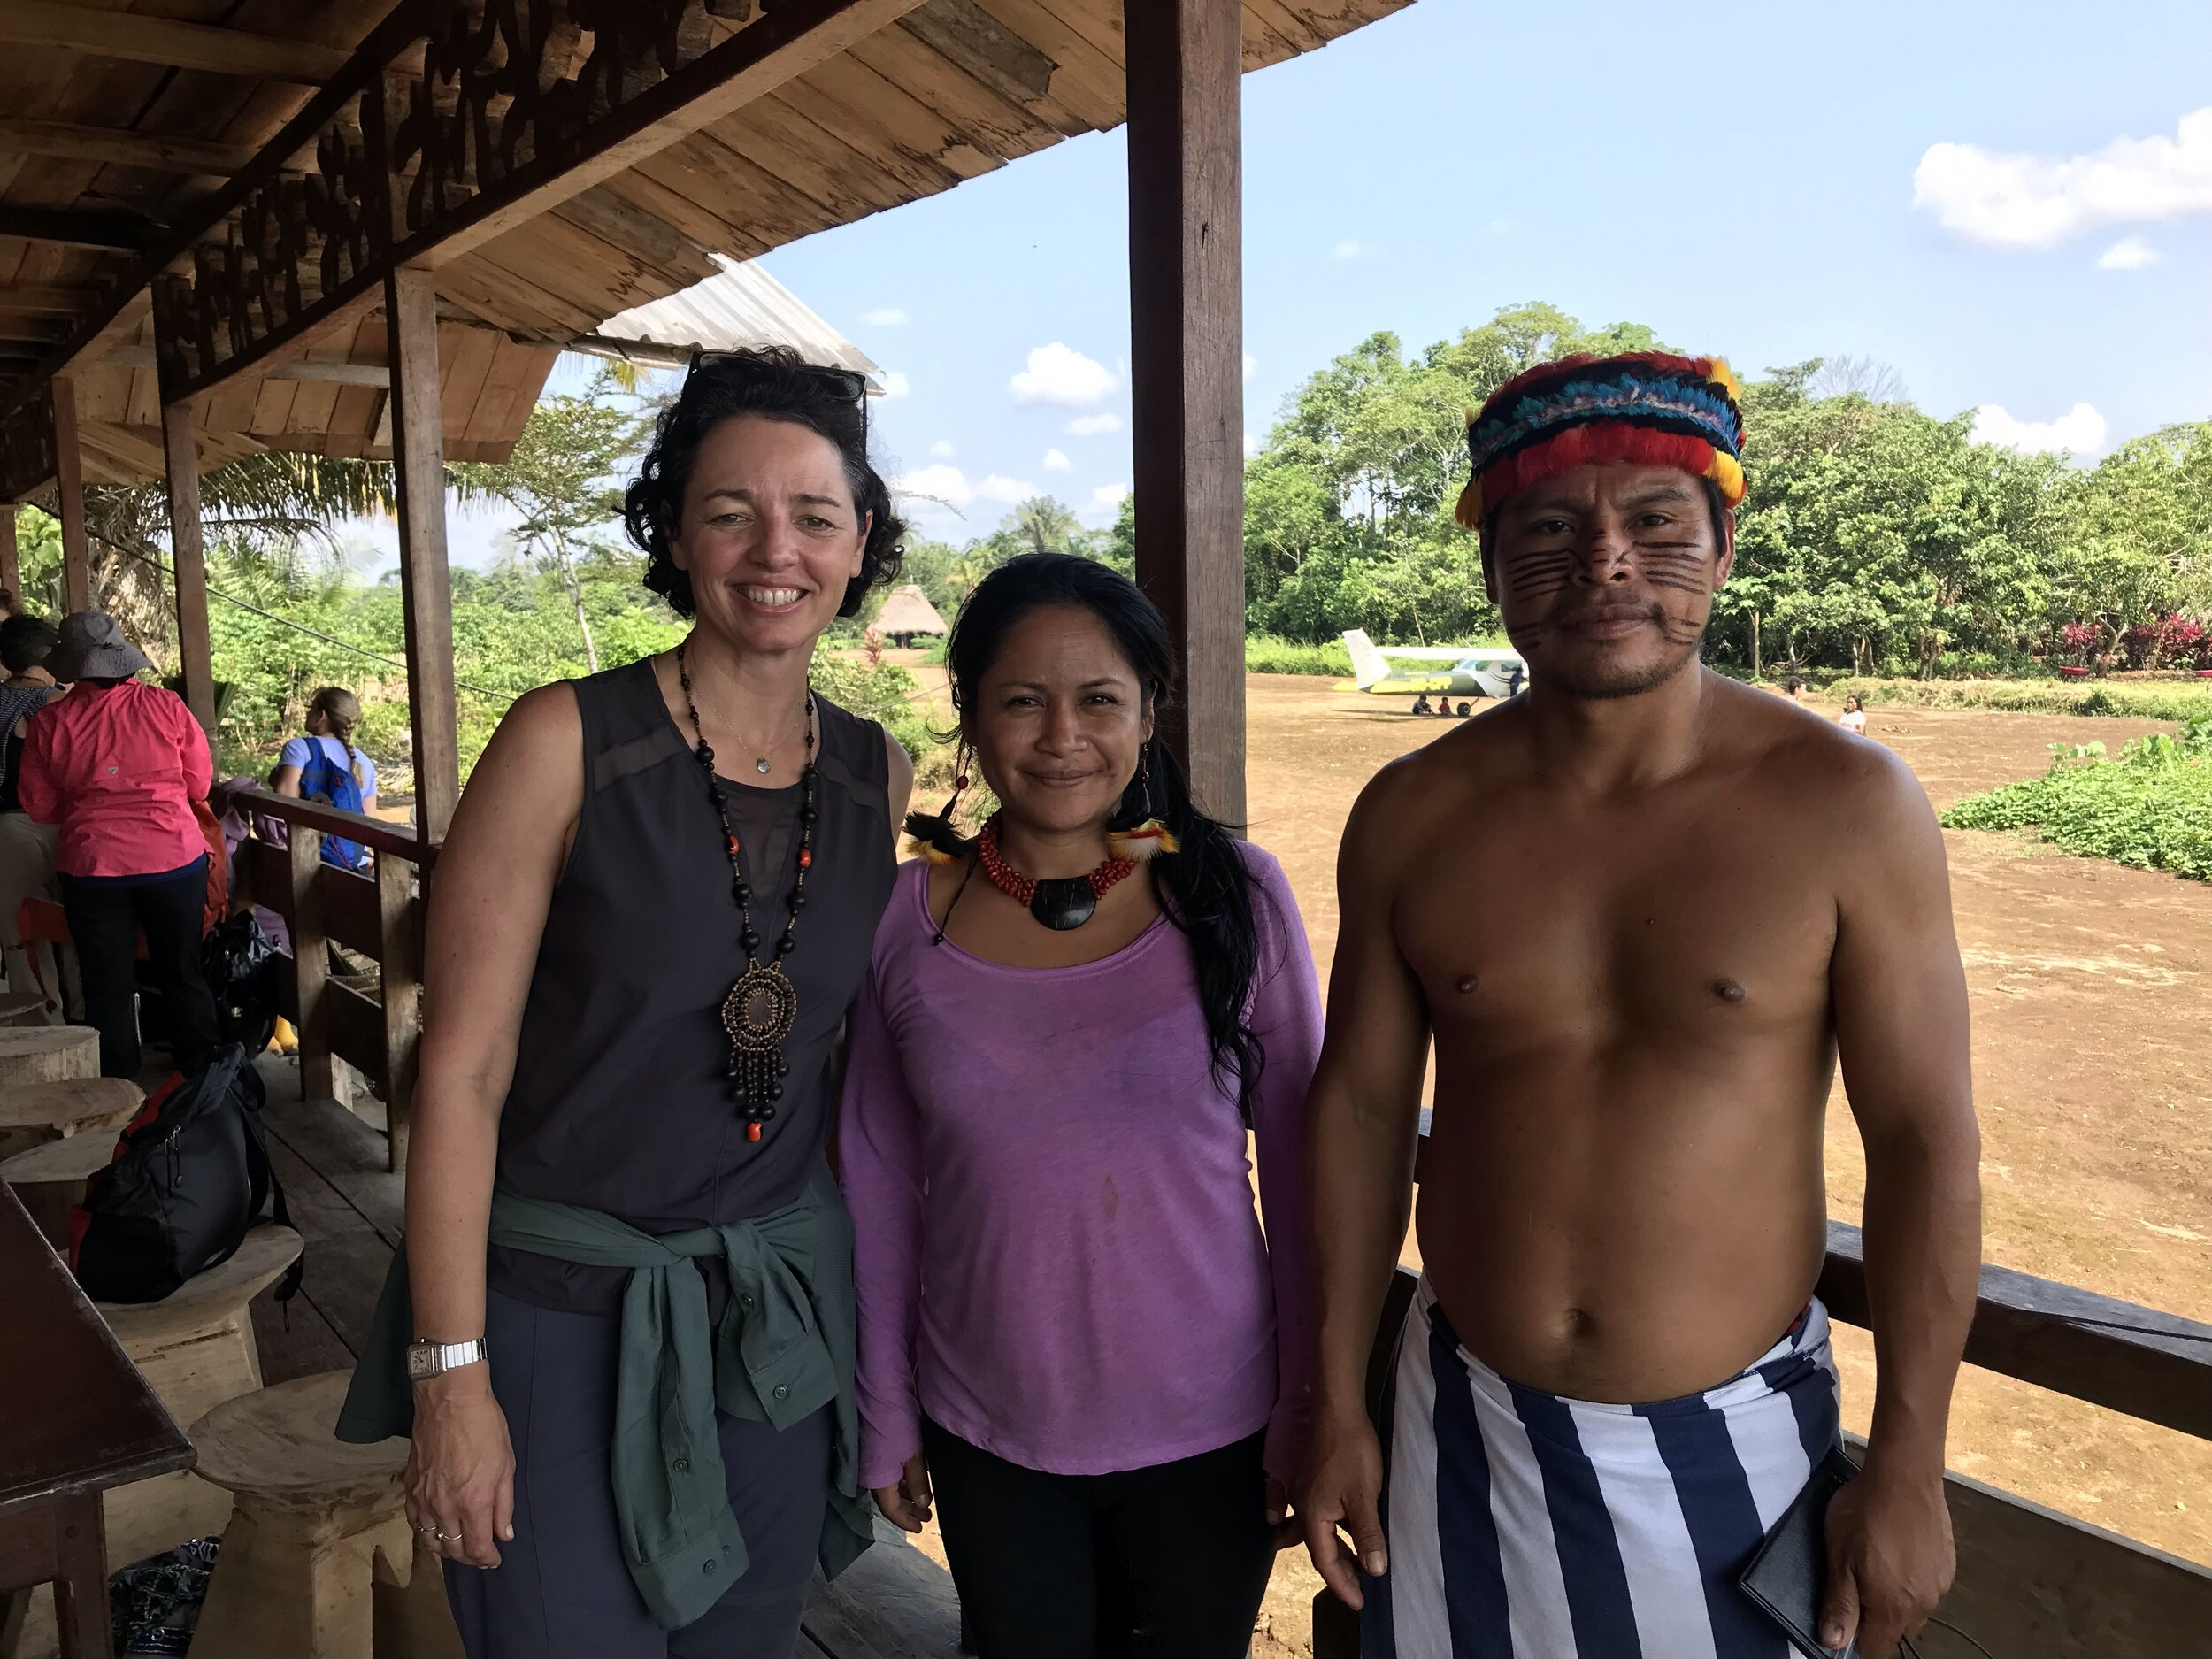 Grace Kraaijvanger, Founder of The Hivery, Narcisa Mashienta, leader of Ikiama Nukuri, and Marco Mukuink of the Sharamentza community, meeting on the recent Hivery and Pachamama Alliance journey to the Amazon.